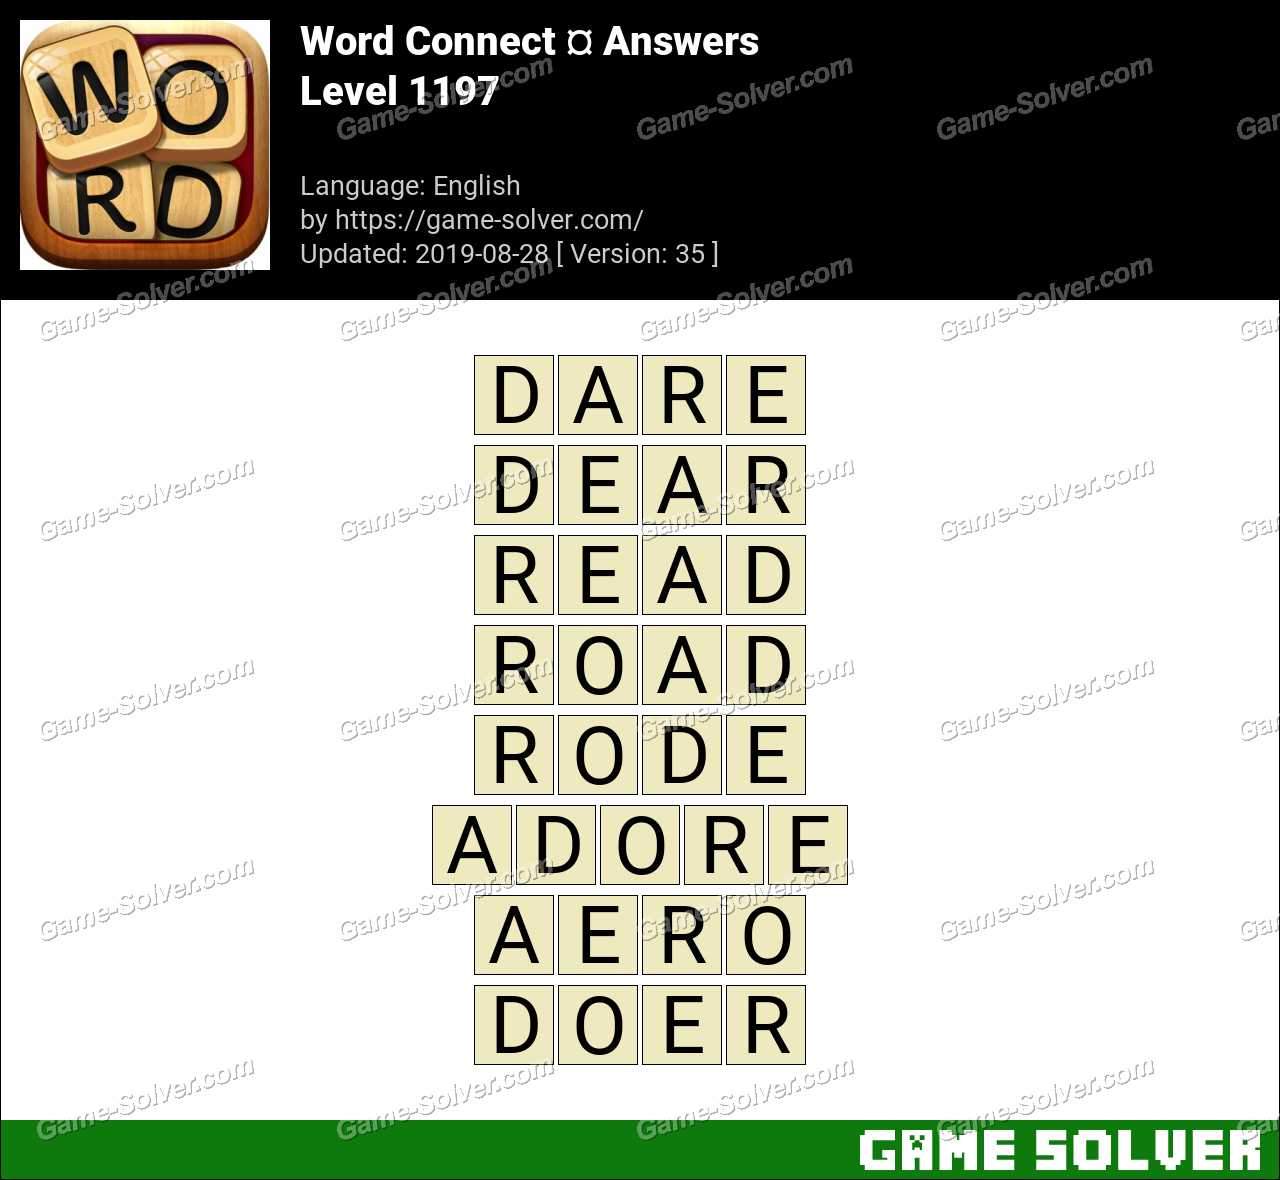 Word Connect Level 1197 Answers